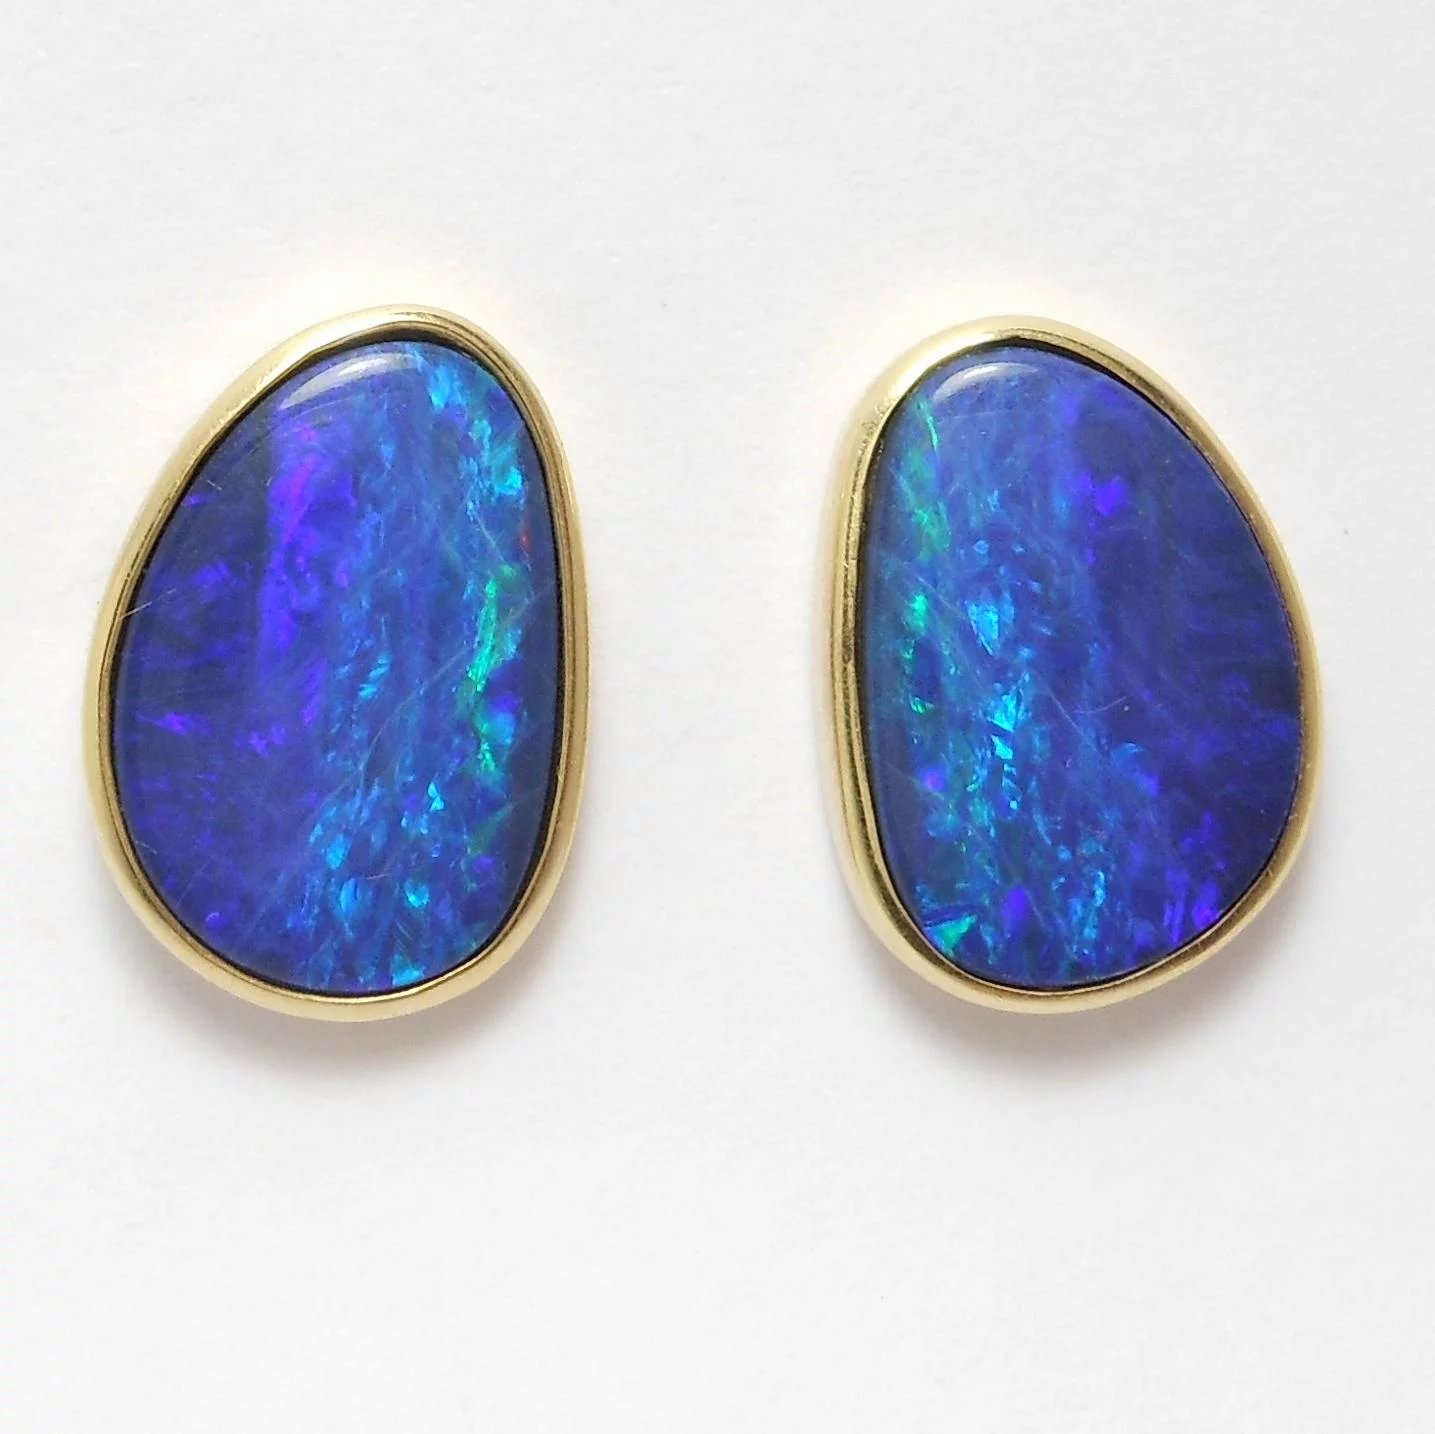 Black Opal Earrings Gorgeous Click To Expand